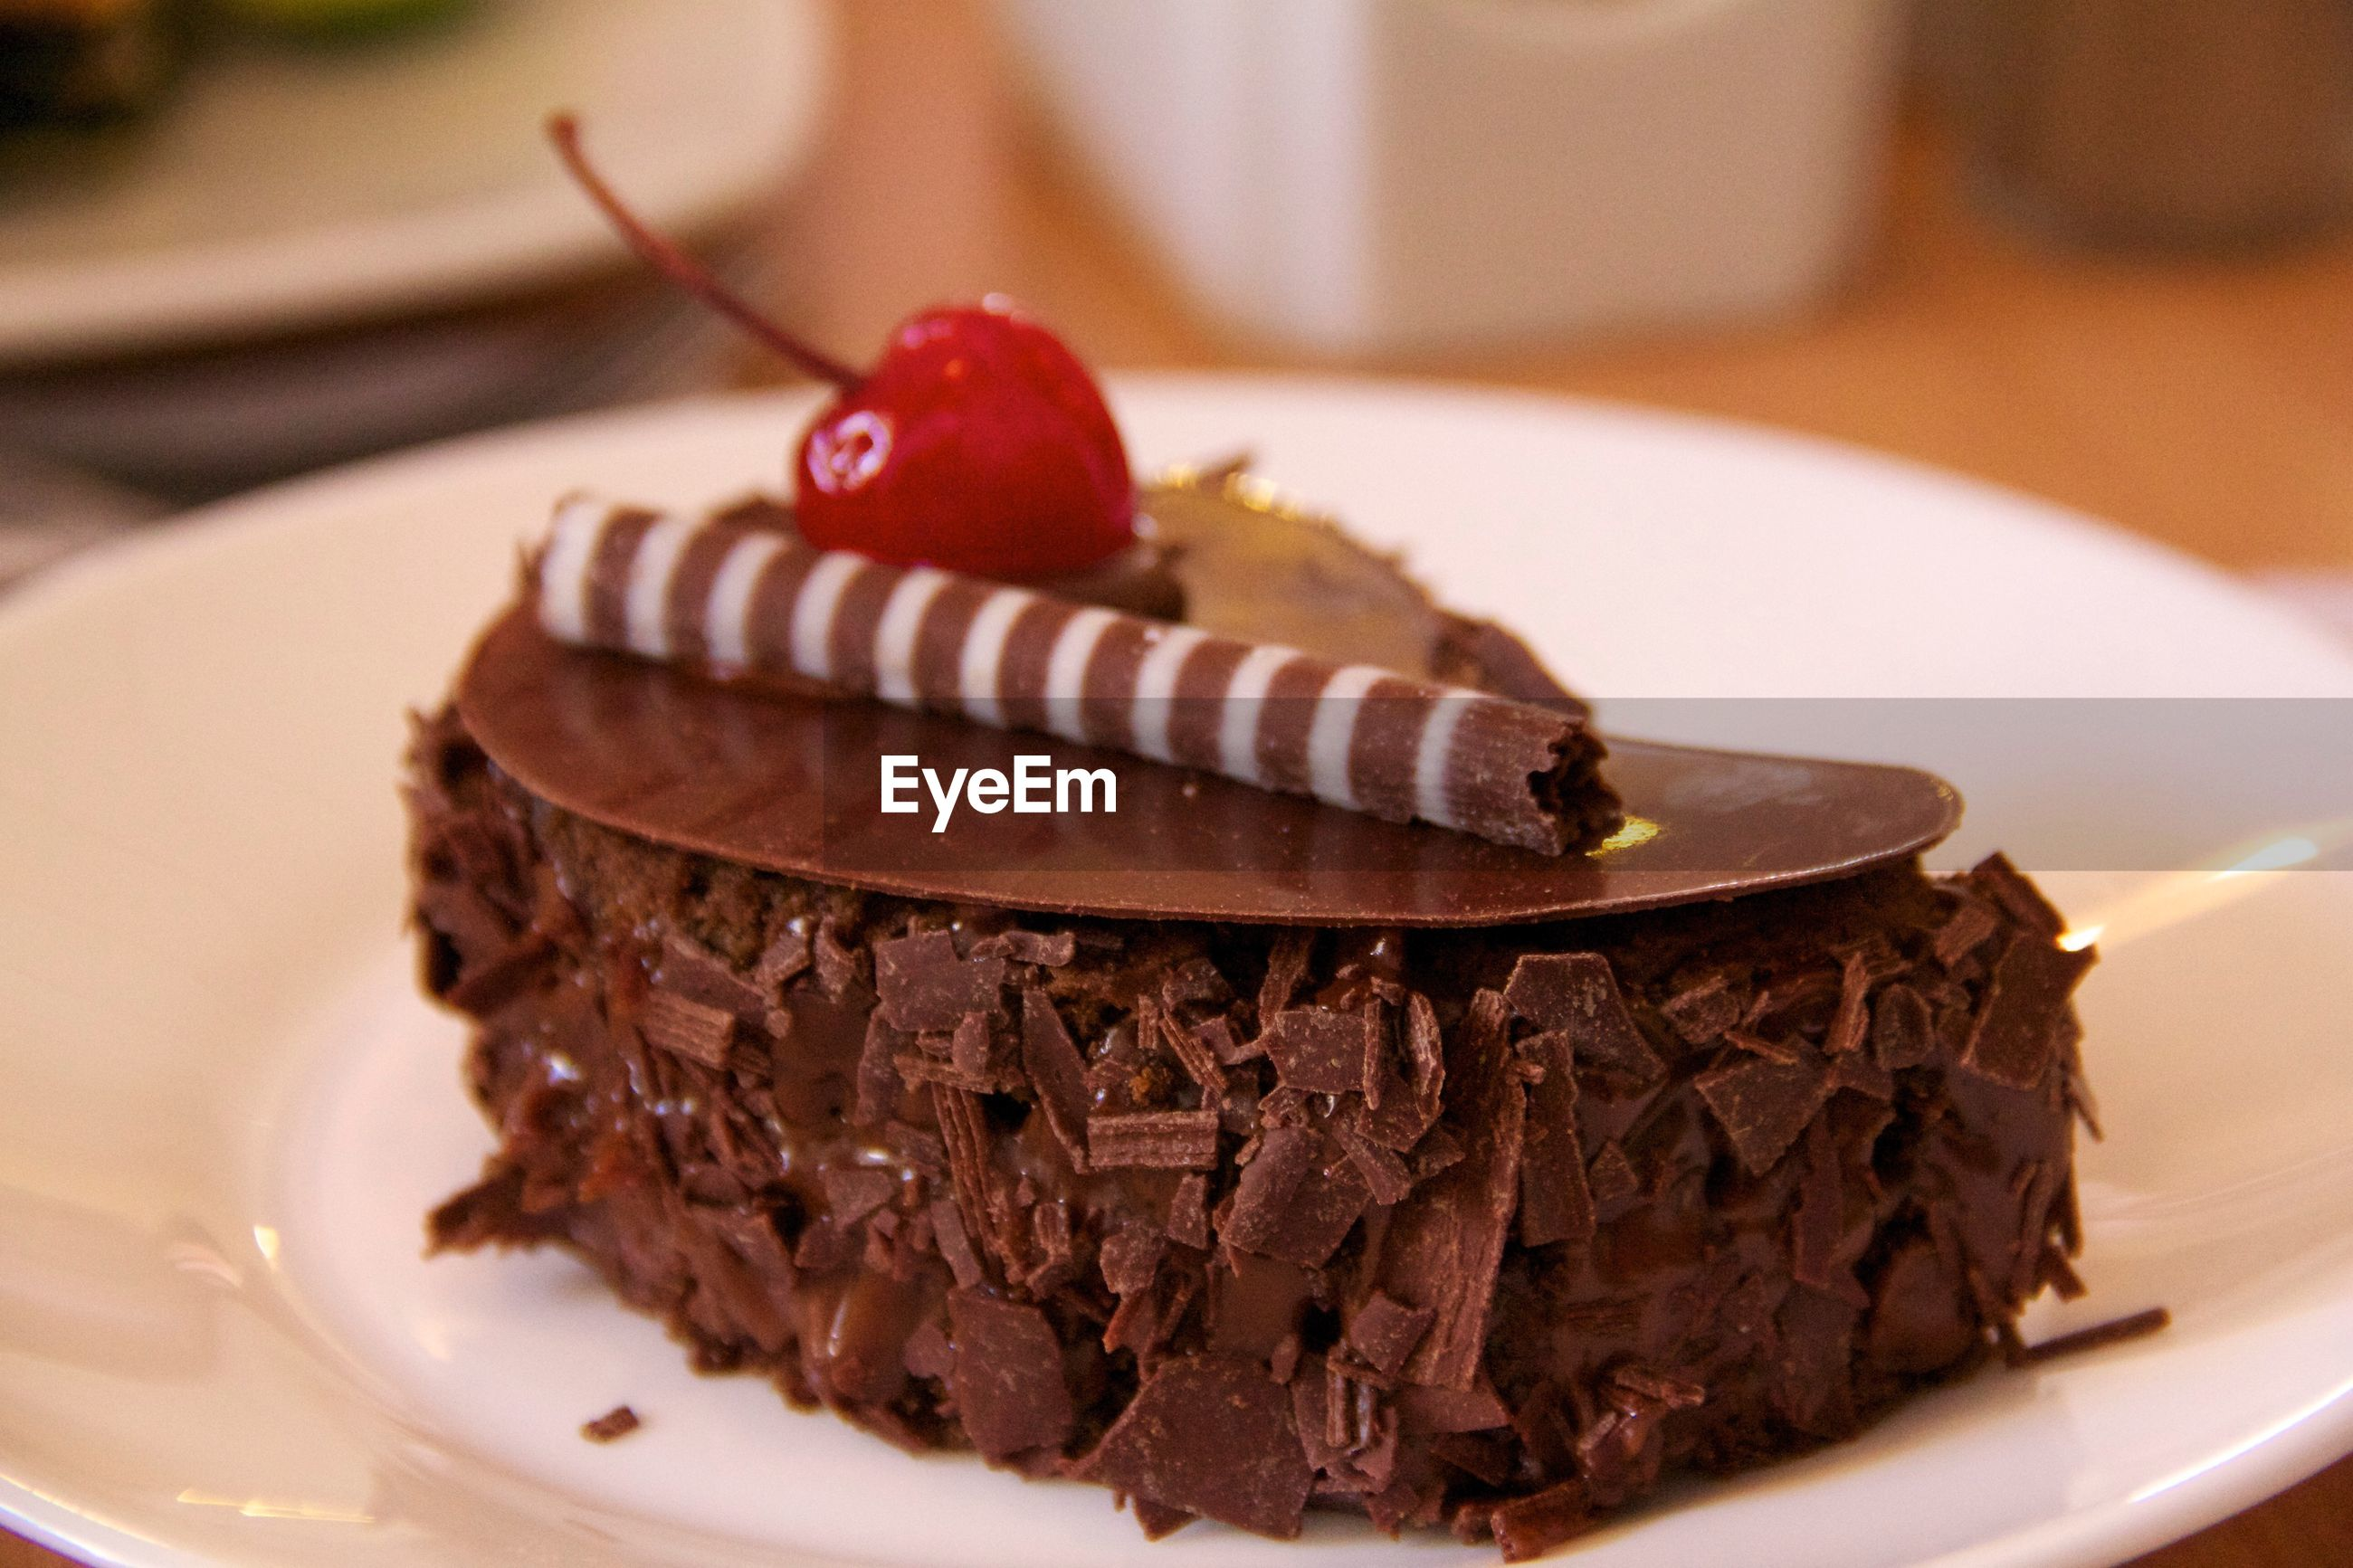 CLOSE-UP OF CHOCOLATE CAKE WITH SLICE IN PLATE